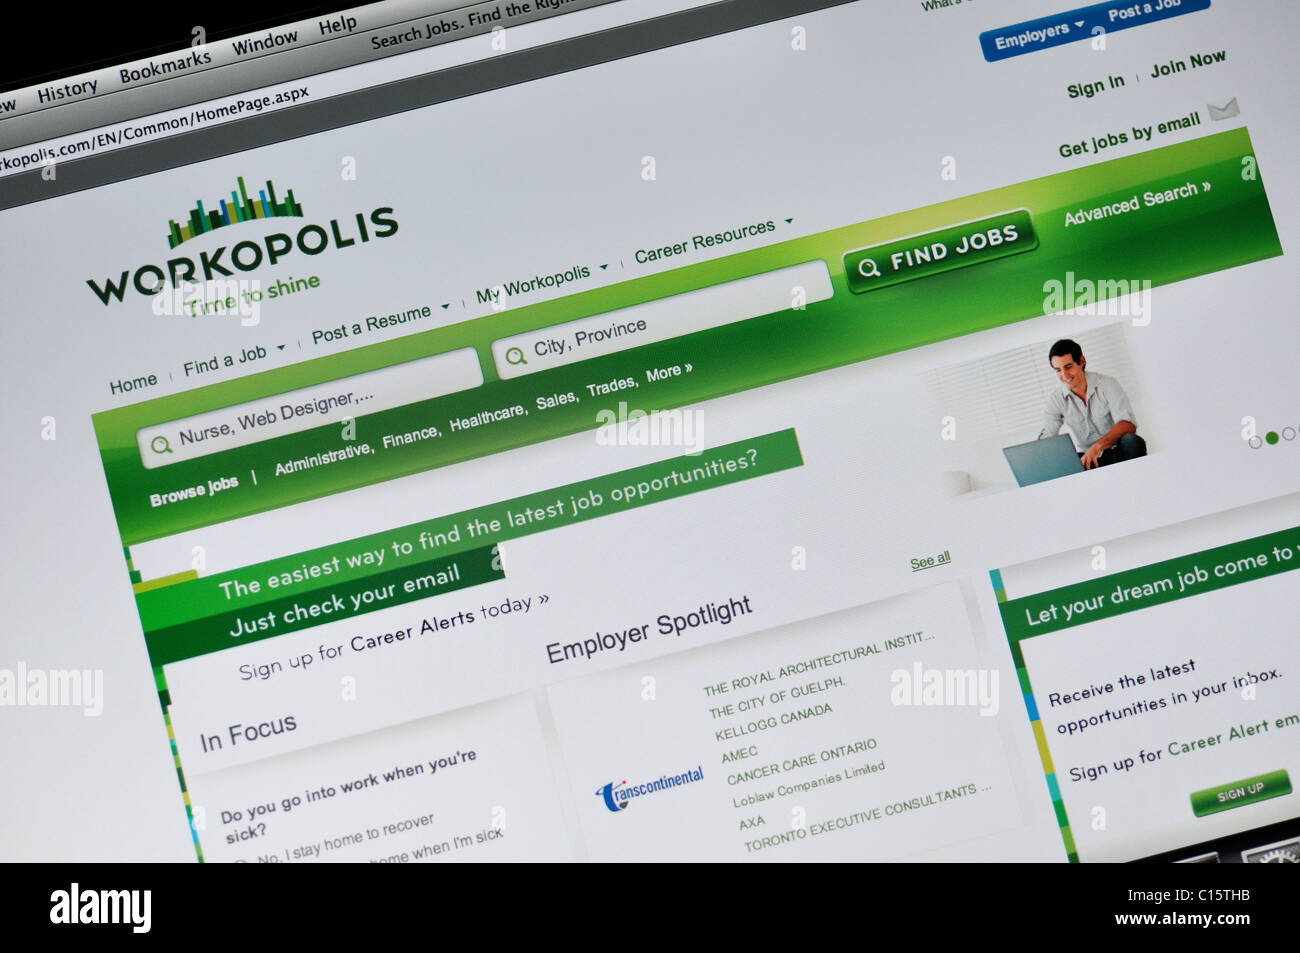 Workopolis website - jobs search engine - Stock Image